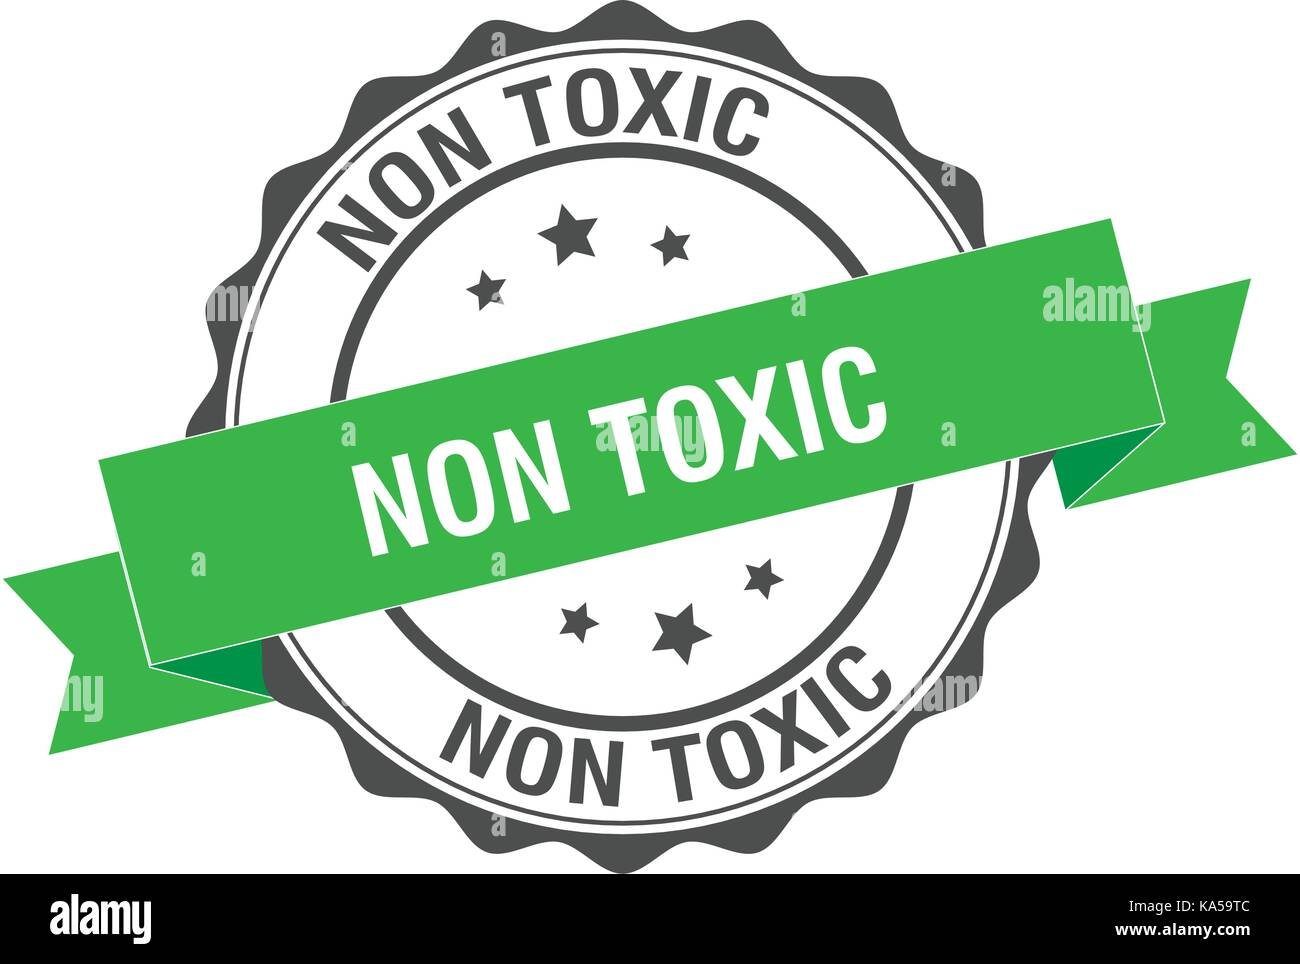 Non toxic stamp illustration stock vector art illustration non toxic stamp illustration biocorpaavc Images